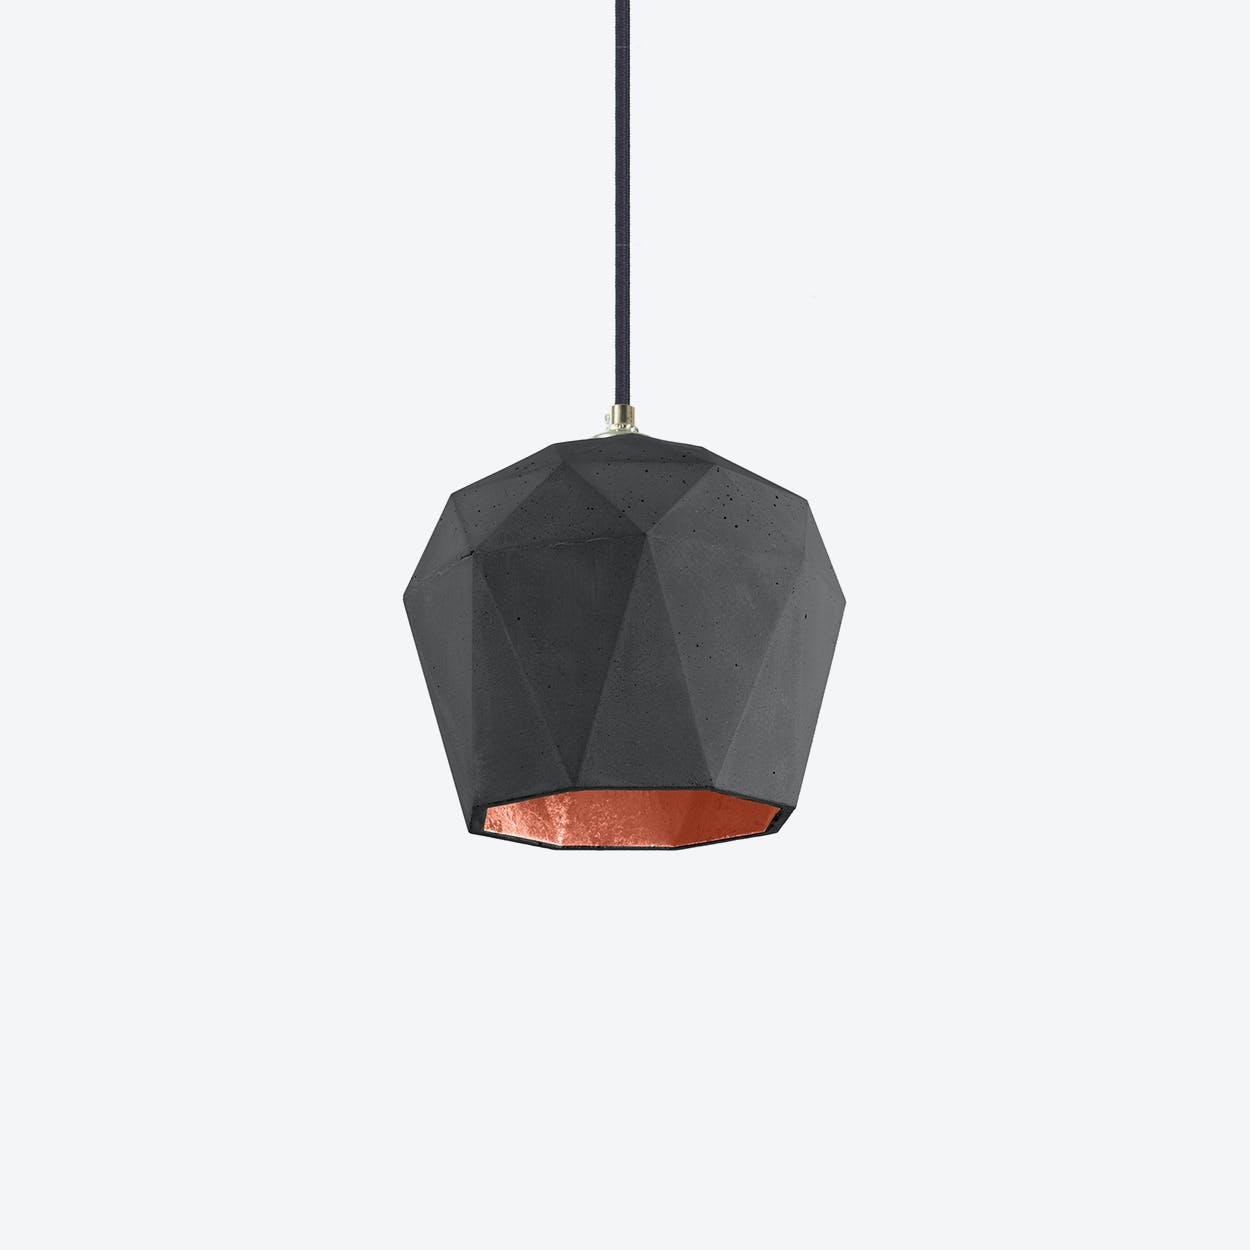 Concrete Pendant Light Triangle T3 in Dark Grey and Copper